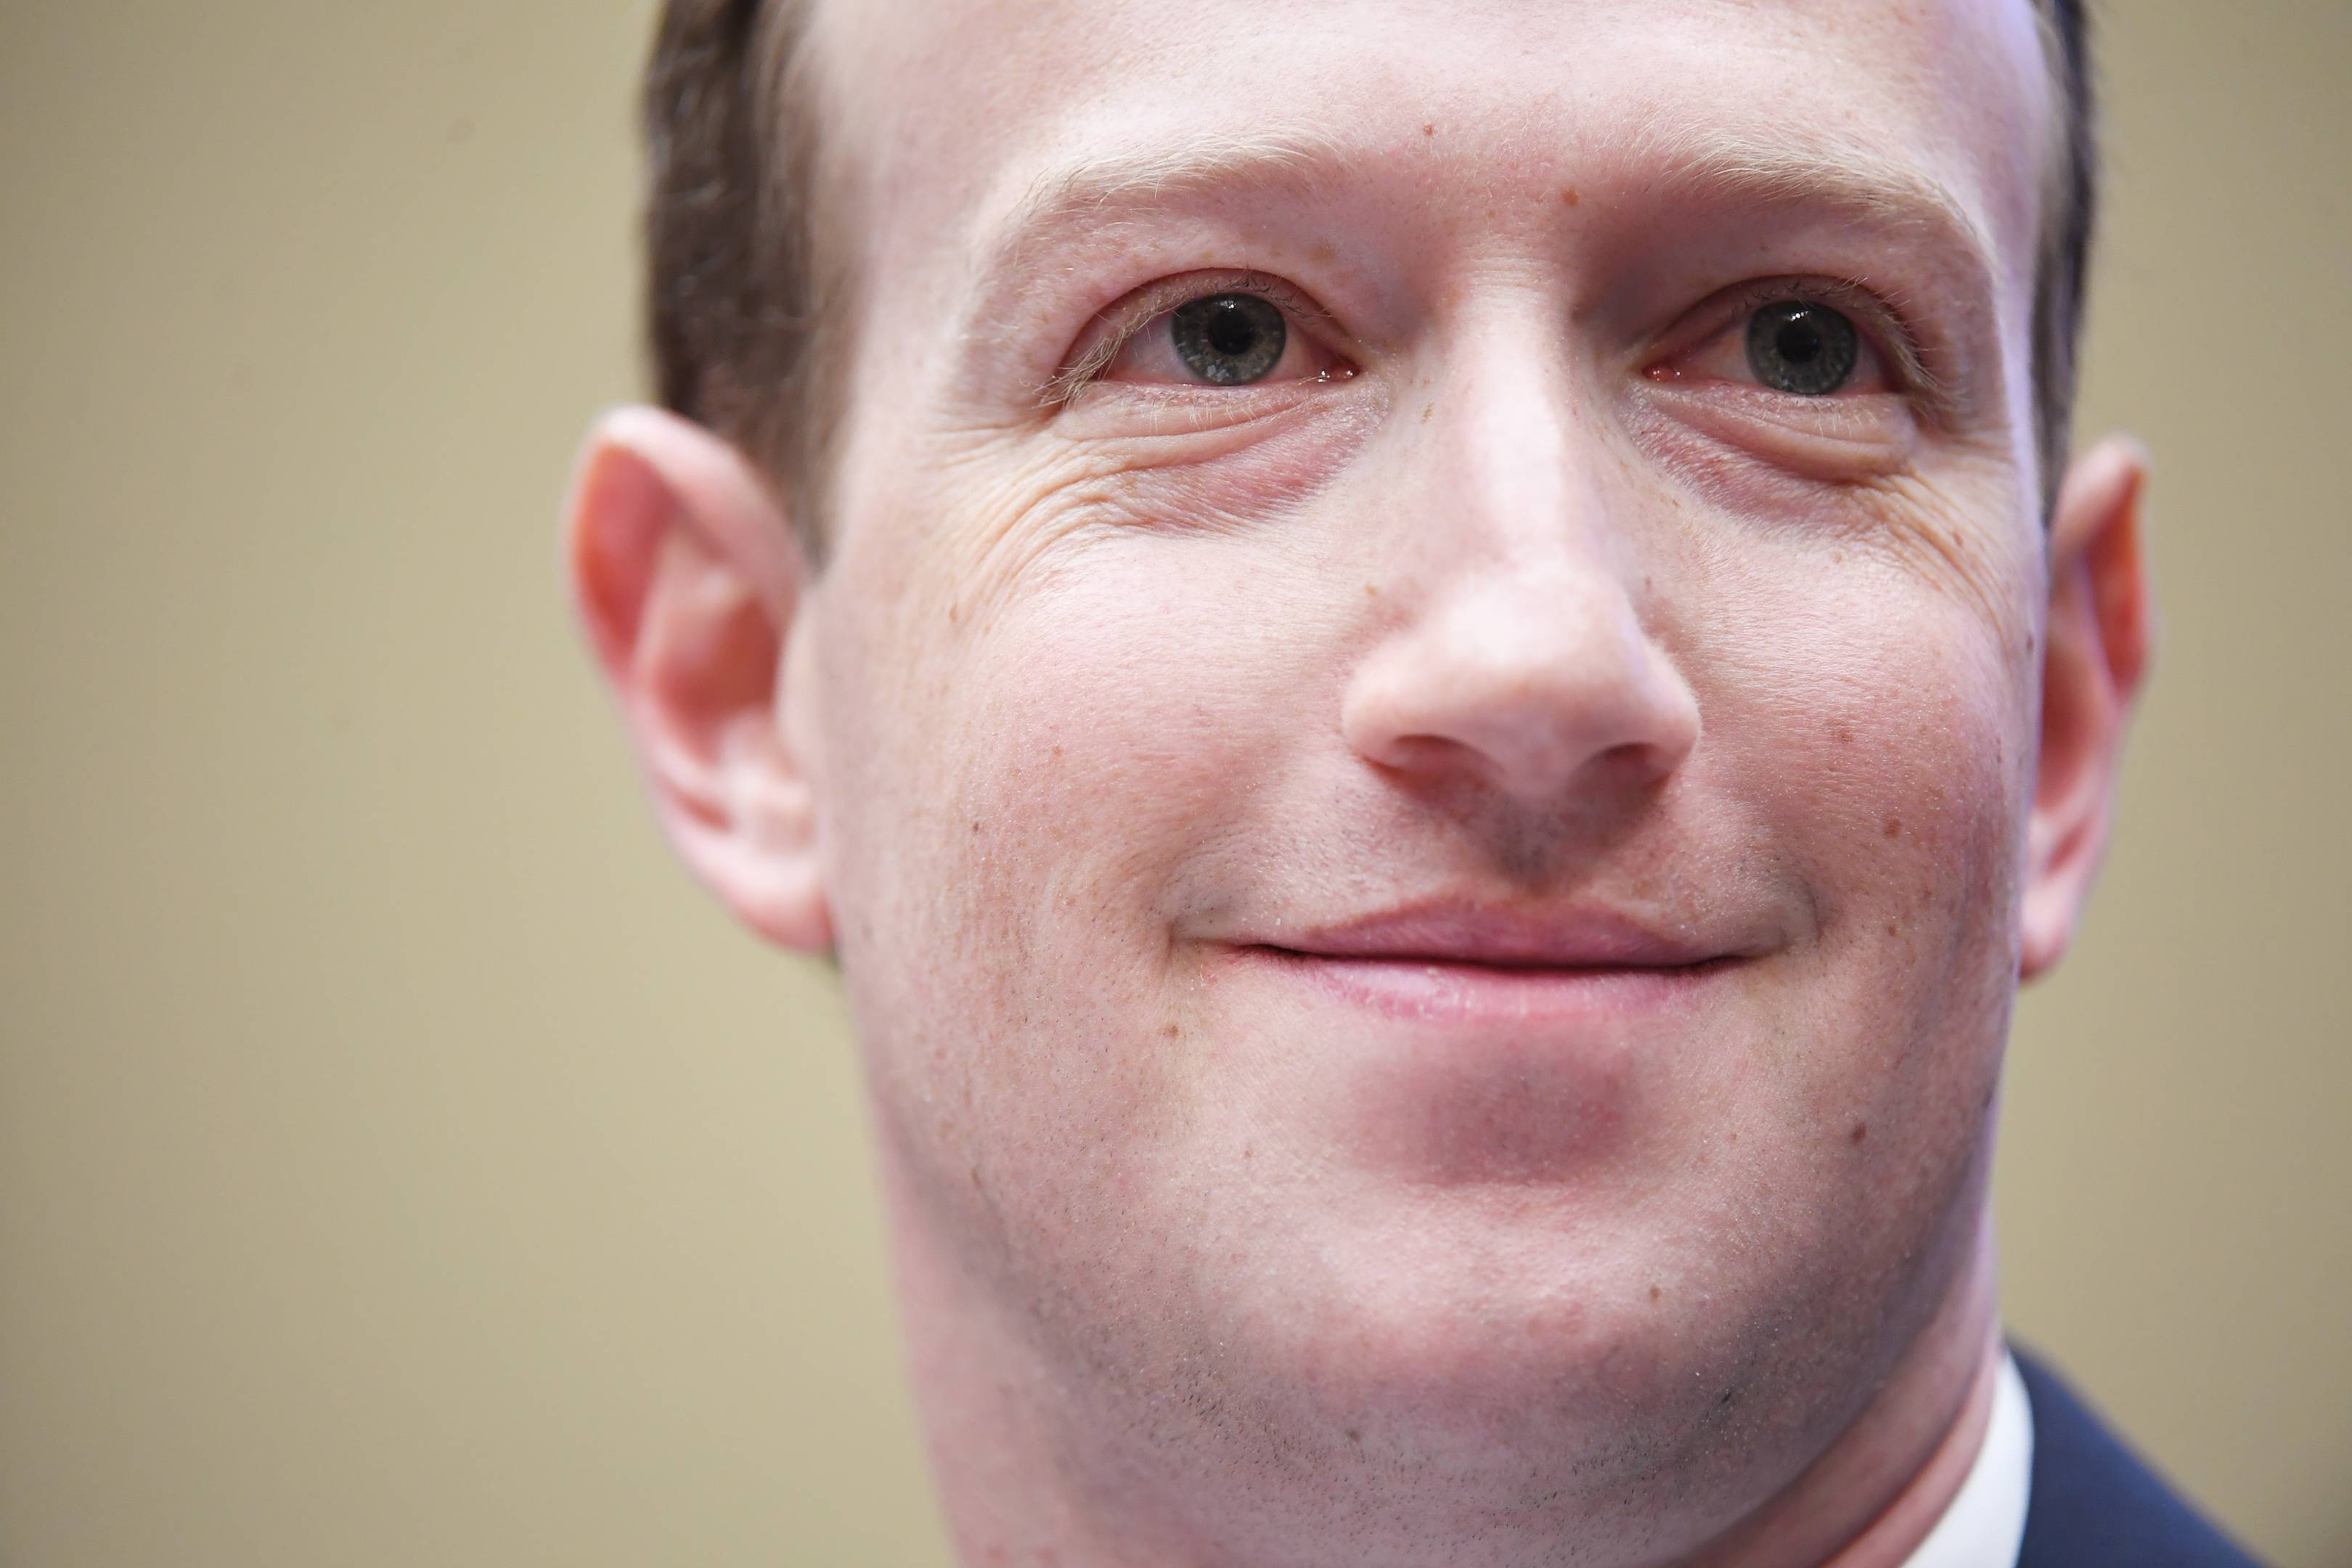 'Dear Mark, this is why I hate you.' An open letter to Zuckerberg